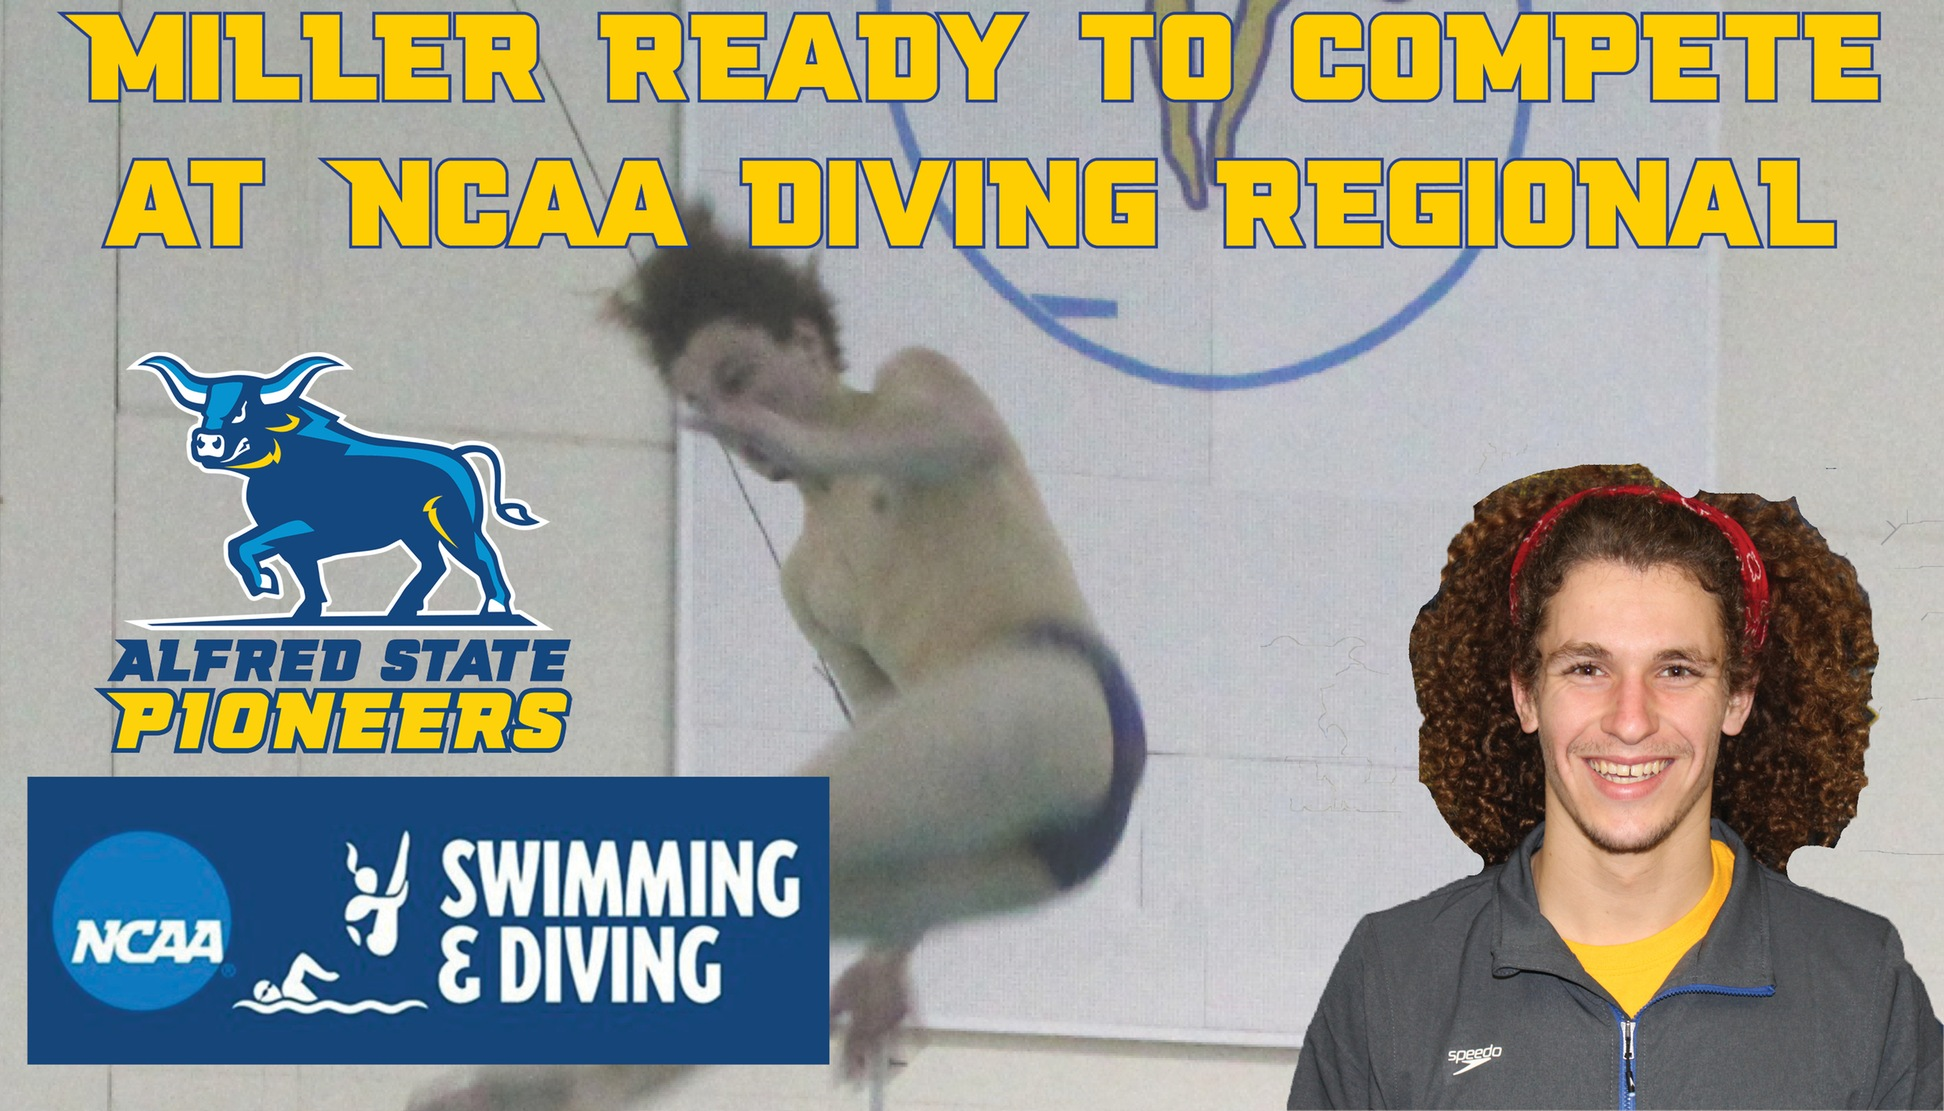 Austin Miller Ready to compete at NCAA Diving Reigonal